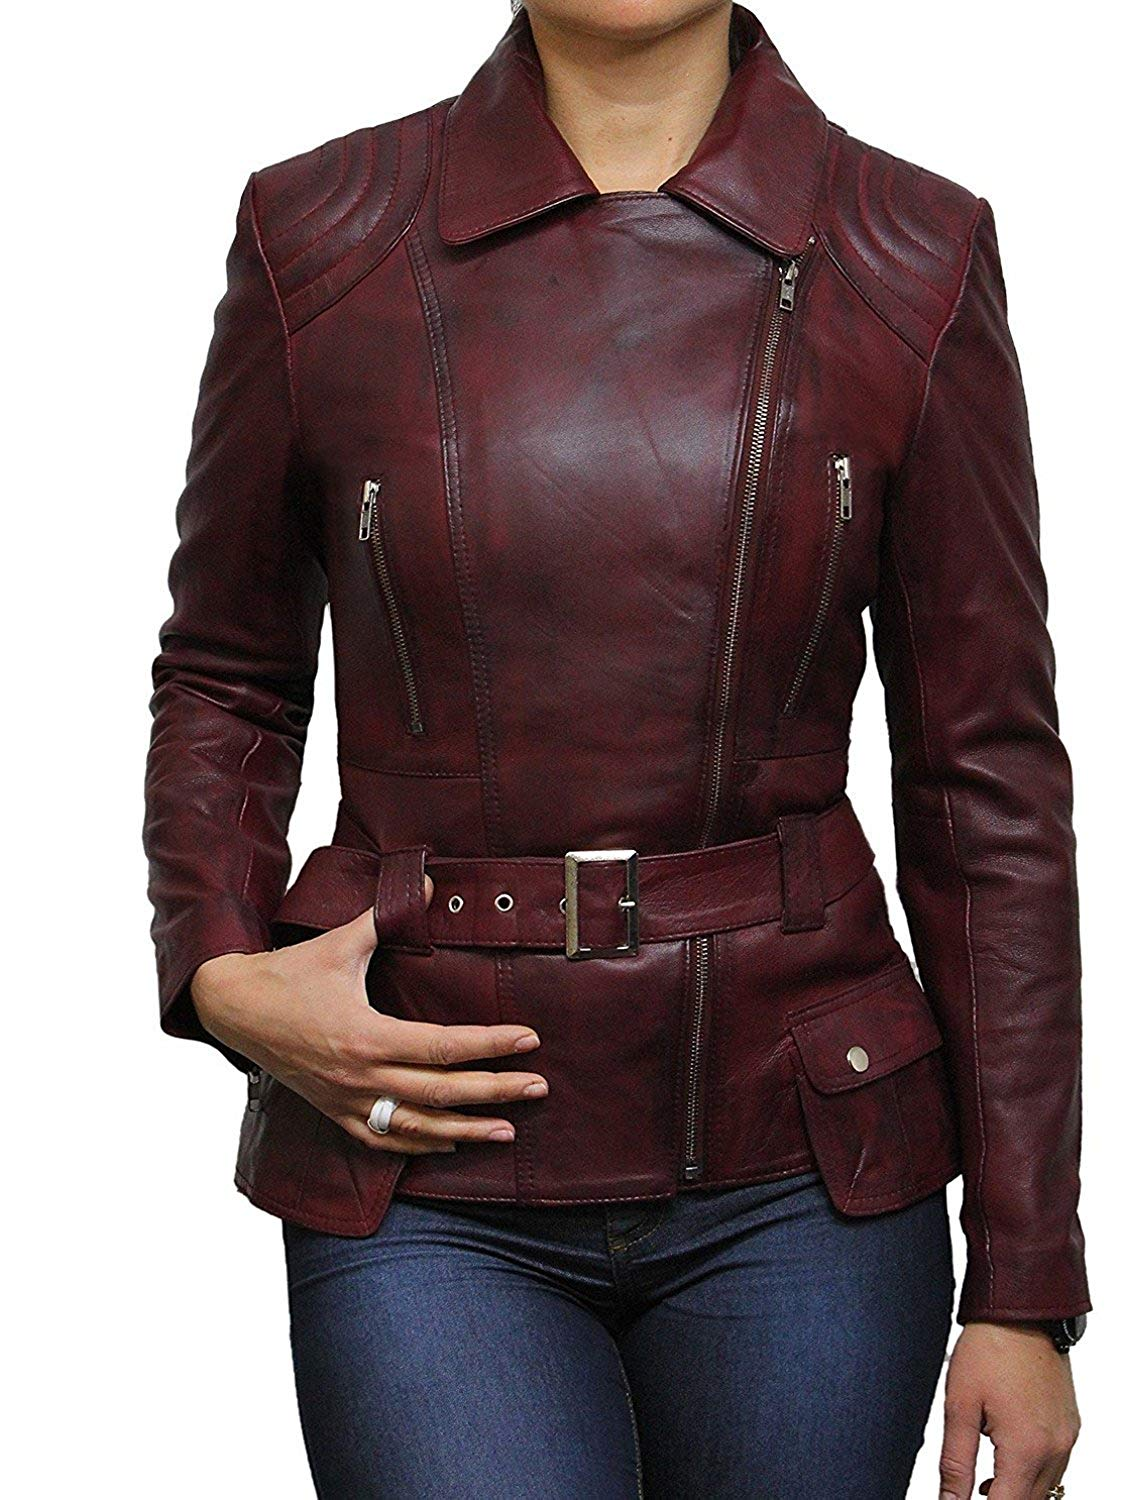 595d94a1f Cheap 3 4 Length Leather Jacket, find 3 4 Length Leather Jacket ...